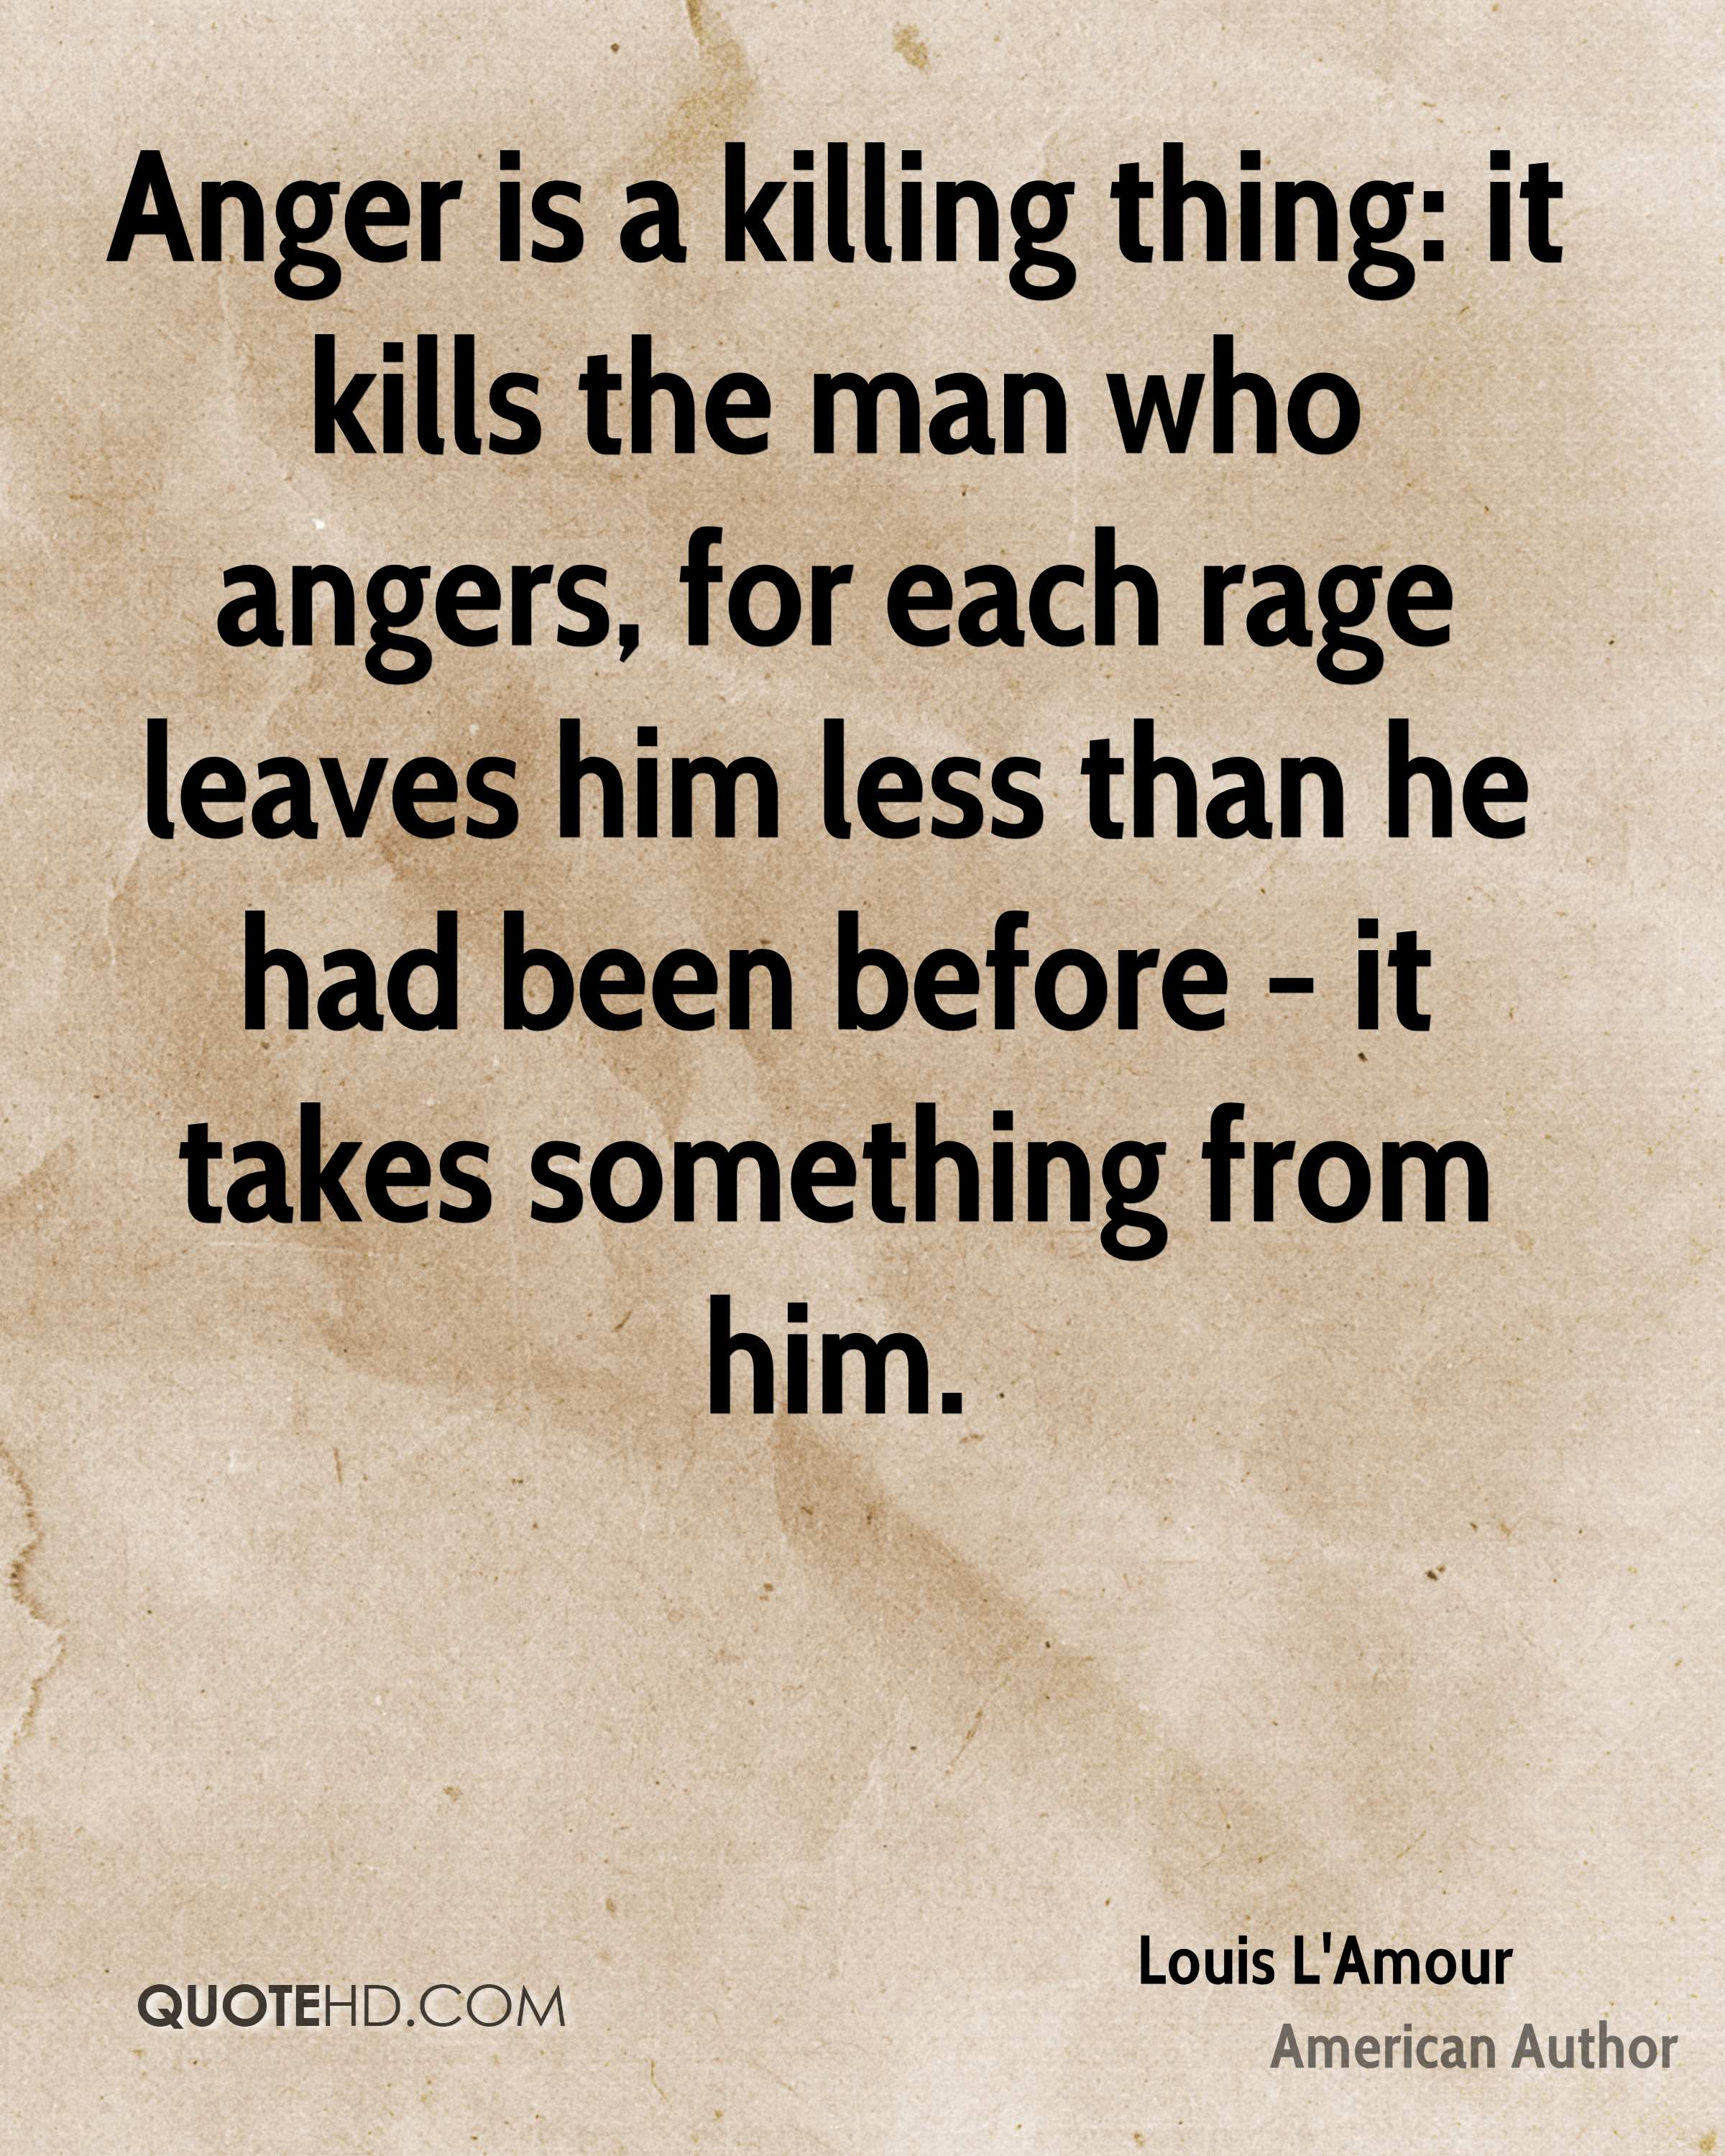 Quotes About Anger And Rage: Louis L'Amour Anger Quotes